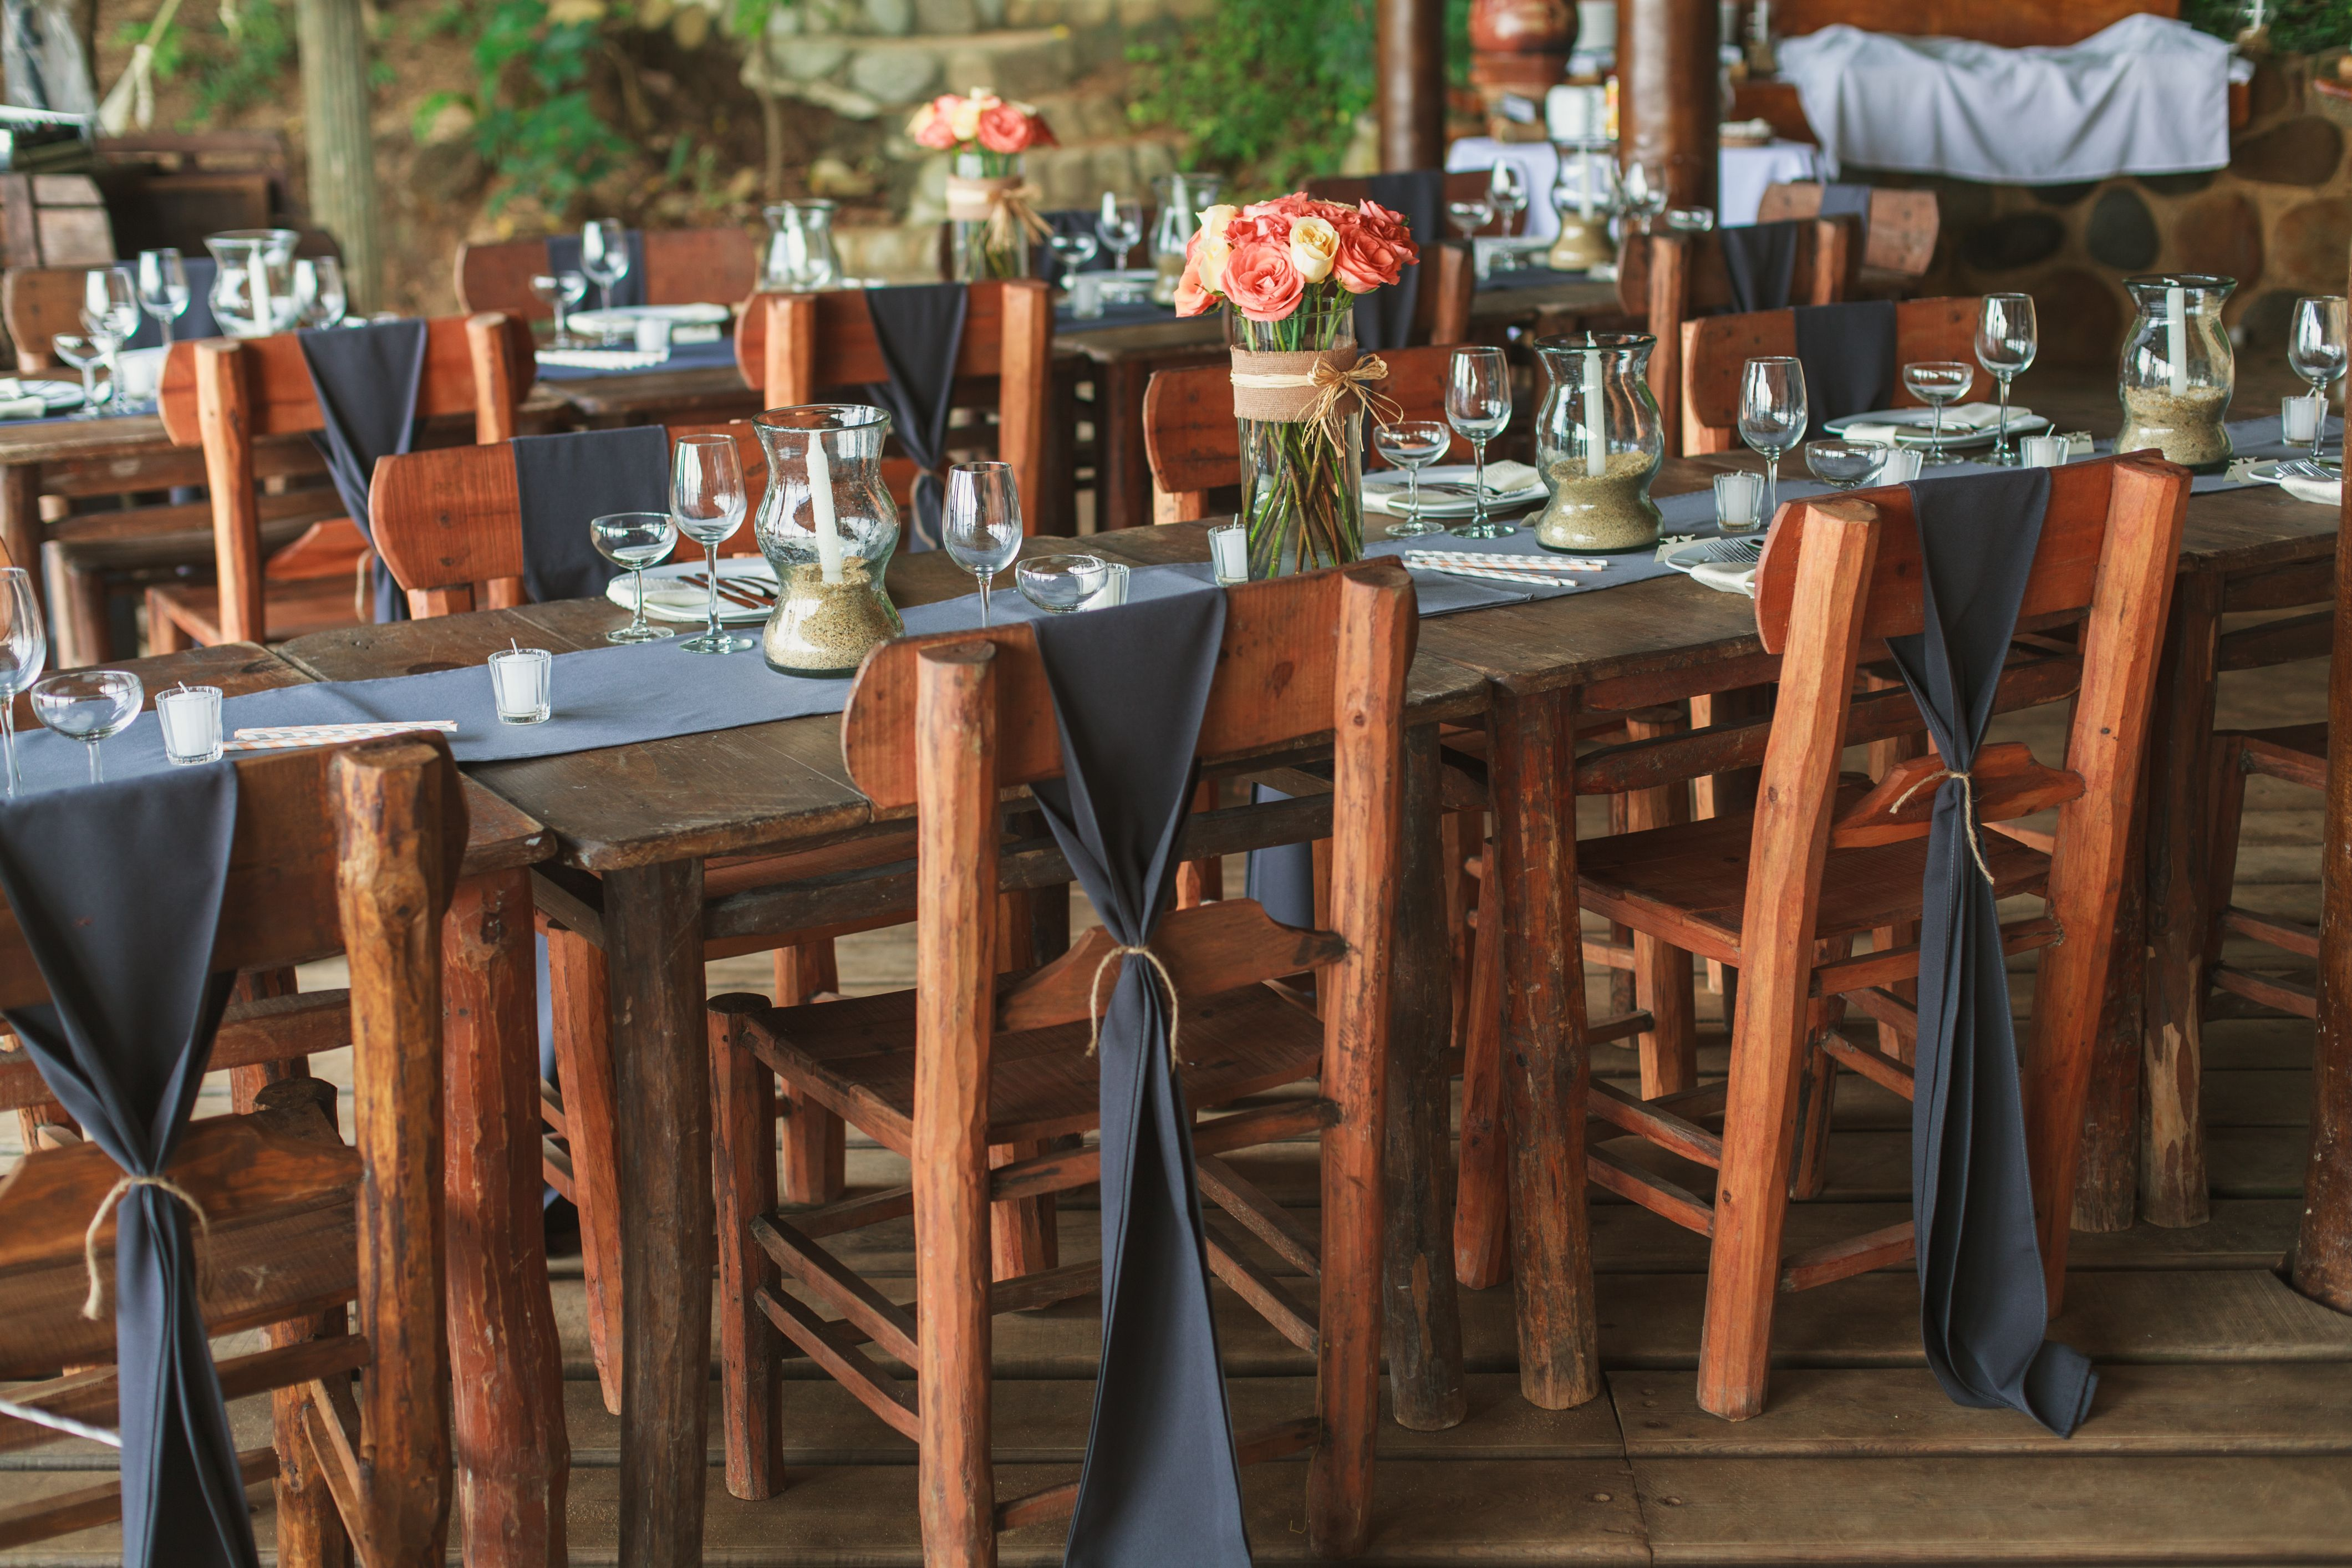 Rustic style, exposed wooden tables and chair bows